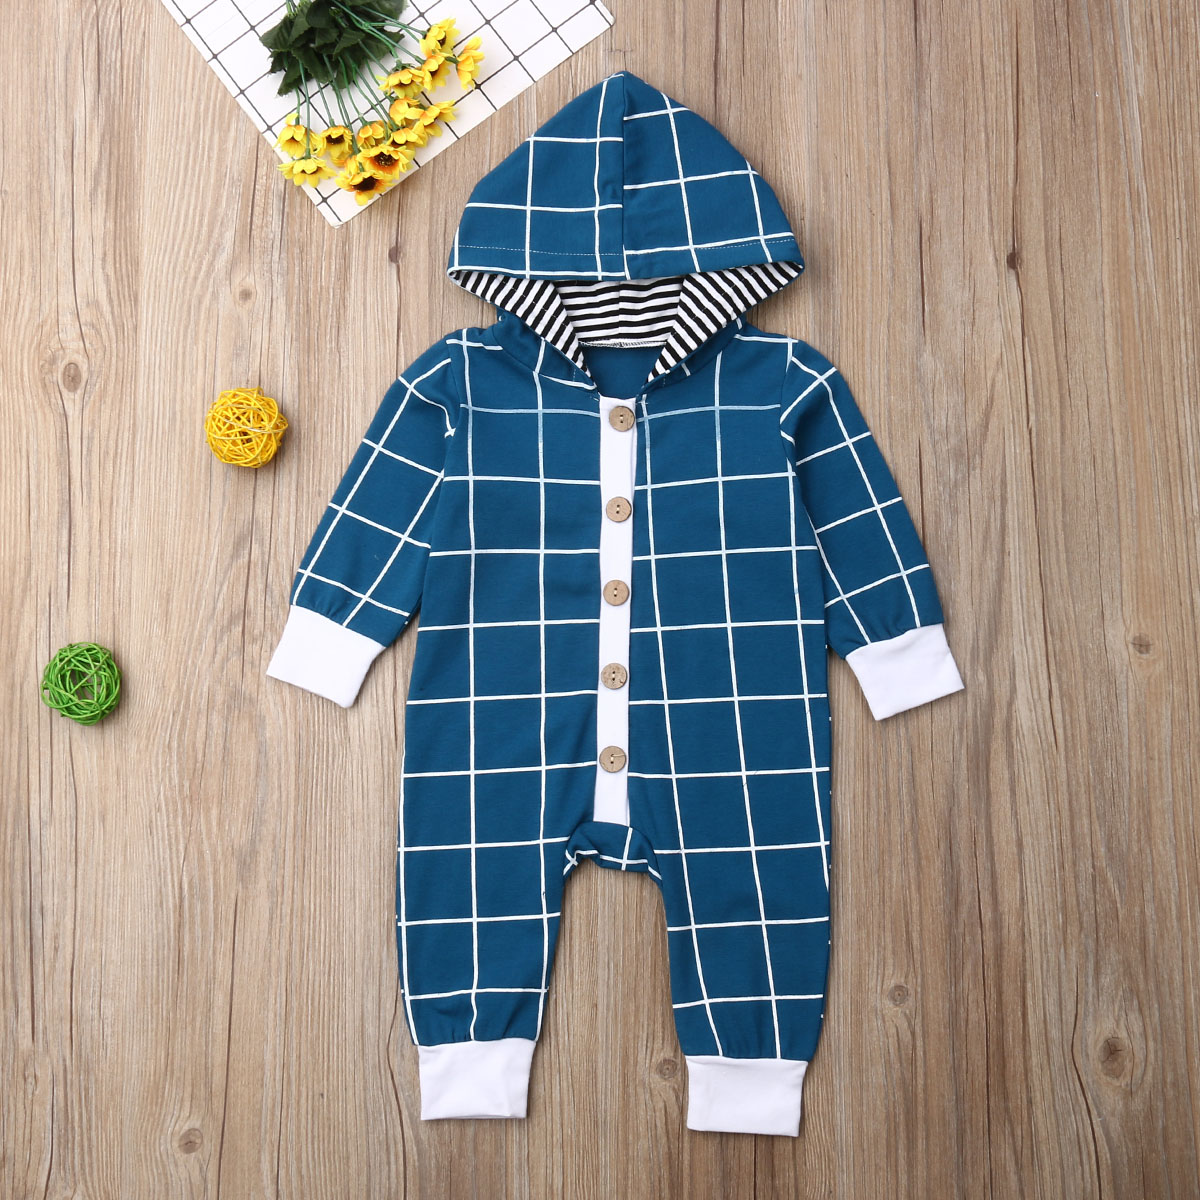 Pudcoco Newborn Baby Boy Clothes Long Sleeve Plaids Button Hooded Romper Jumpsuit One-Piece Outfit Cotton Clothes